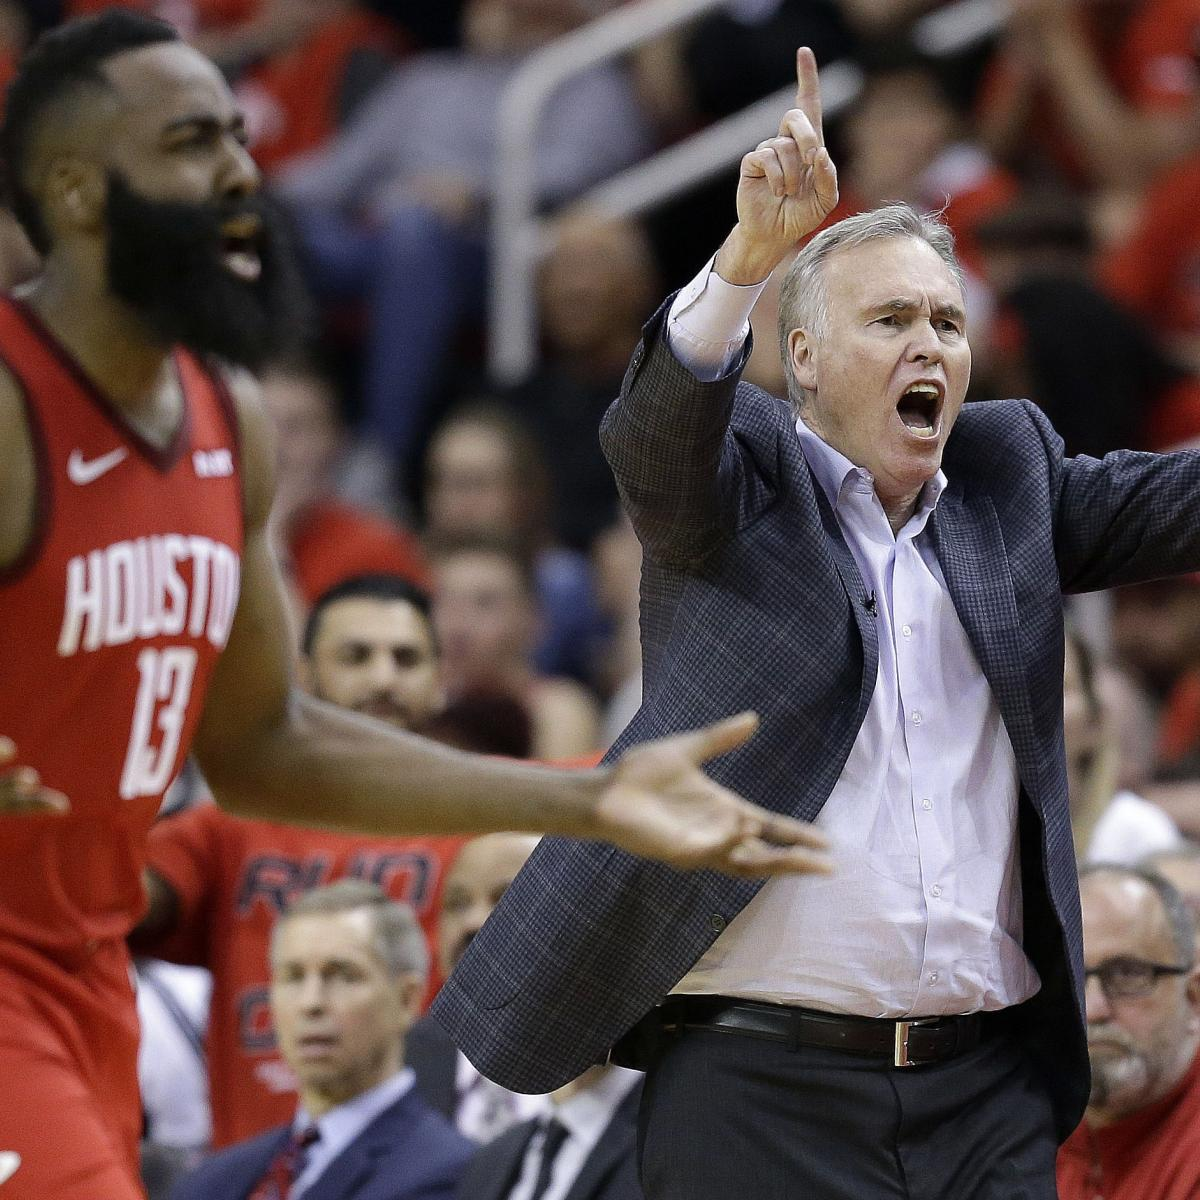 Rockets Vs Warriors Jan 3 2019: Mike D'Antoni Says Rockets Must 'Impose Our Will' Vs